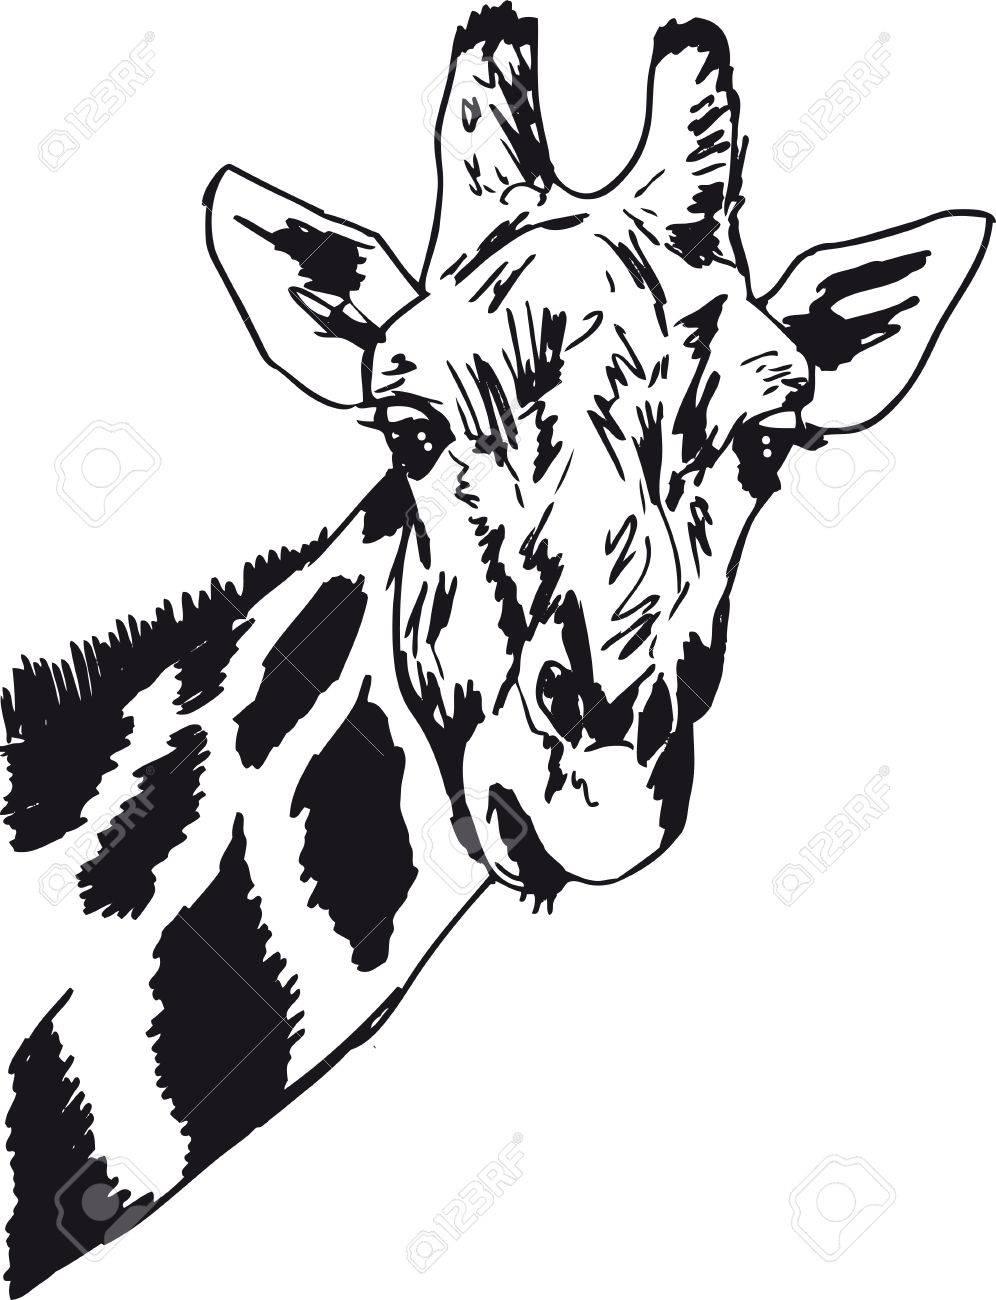 434 one giraffe stock vector illustration and royalty free one